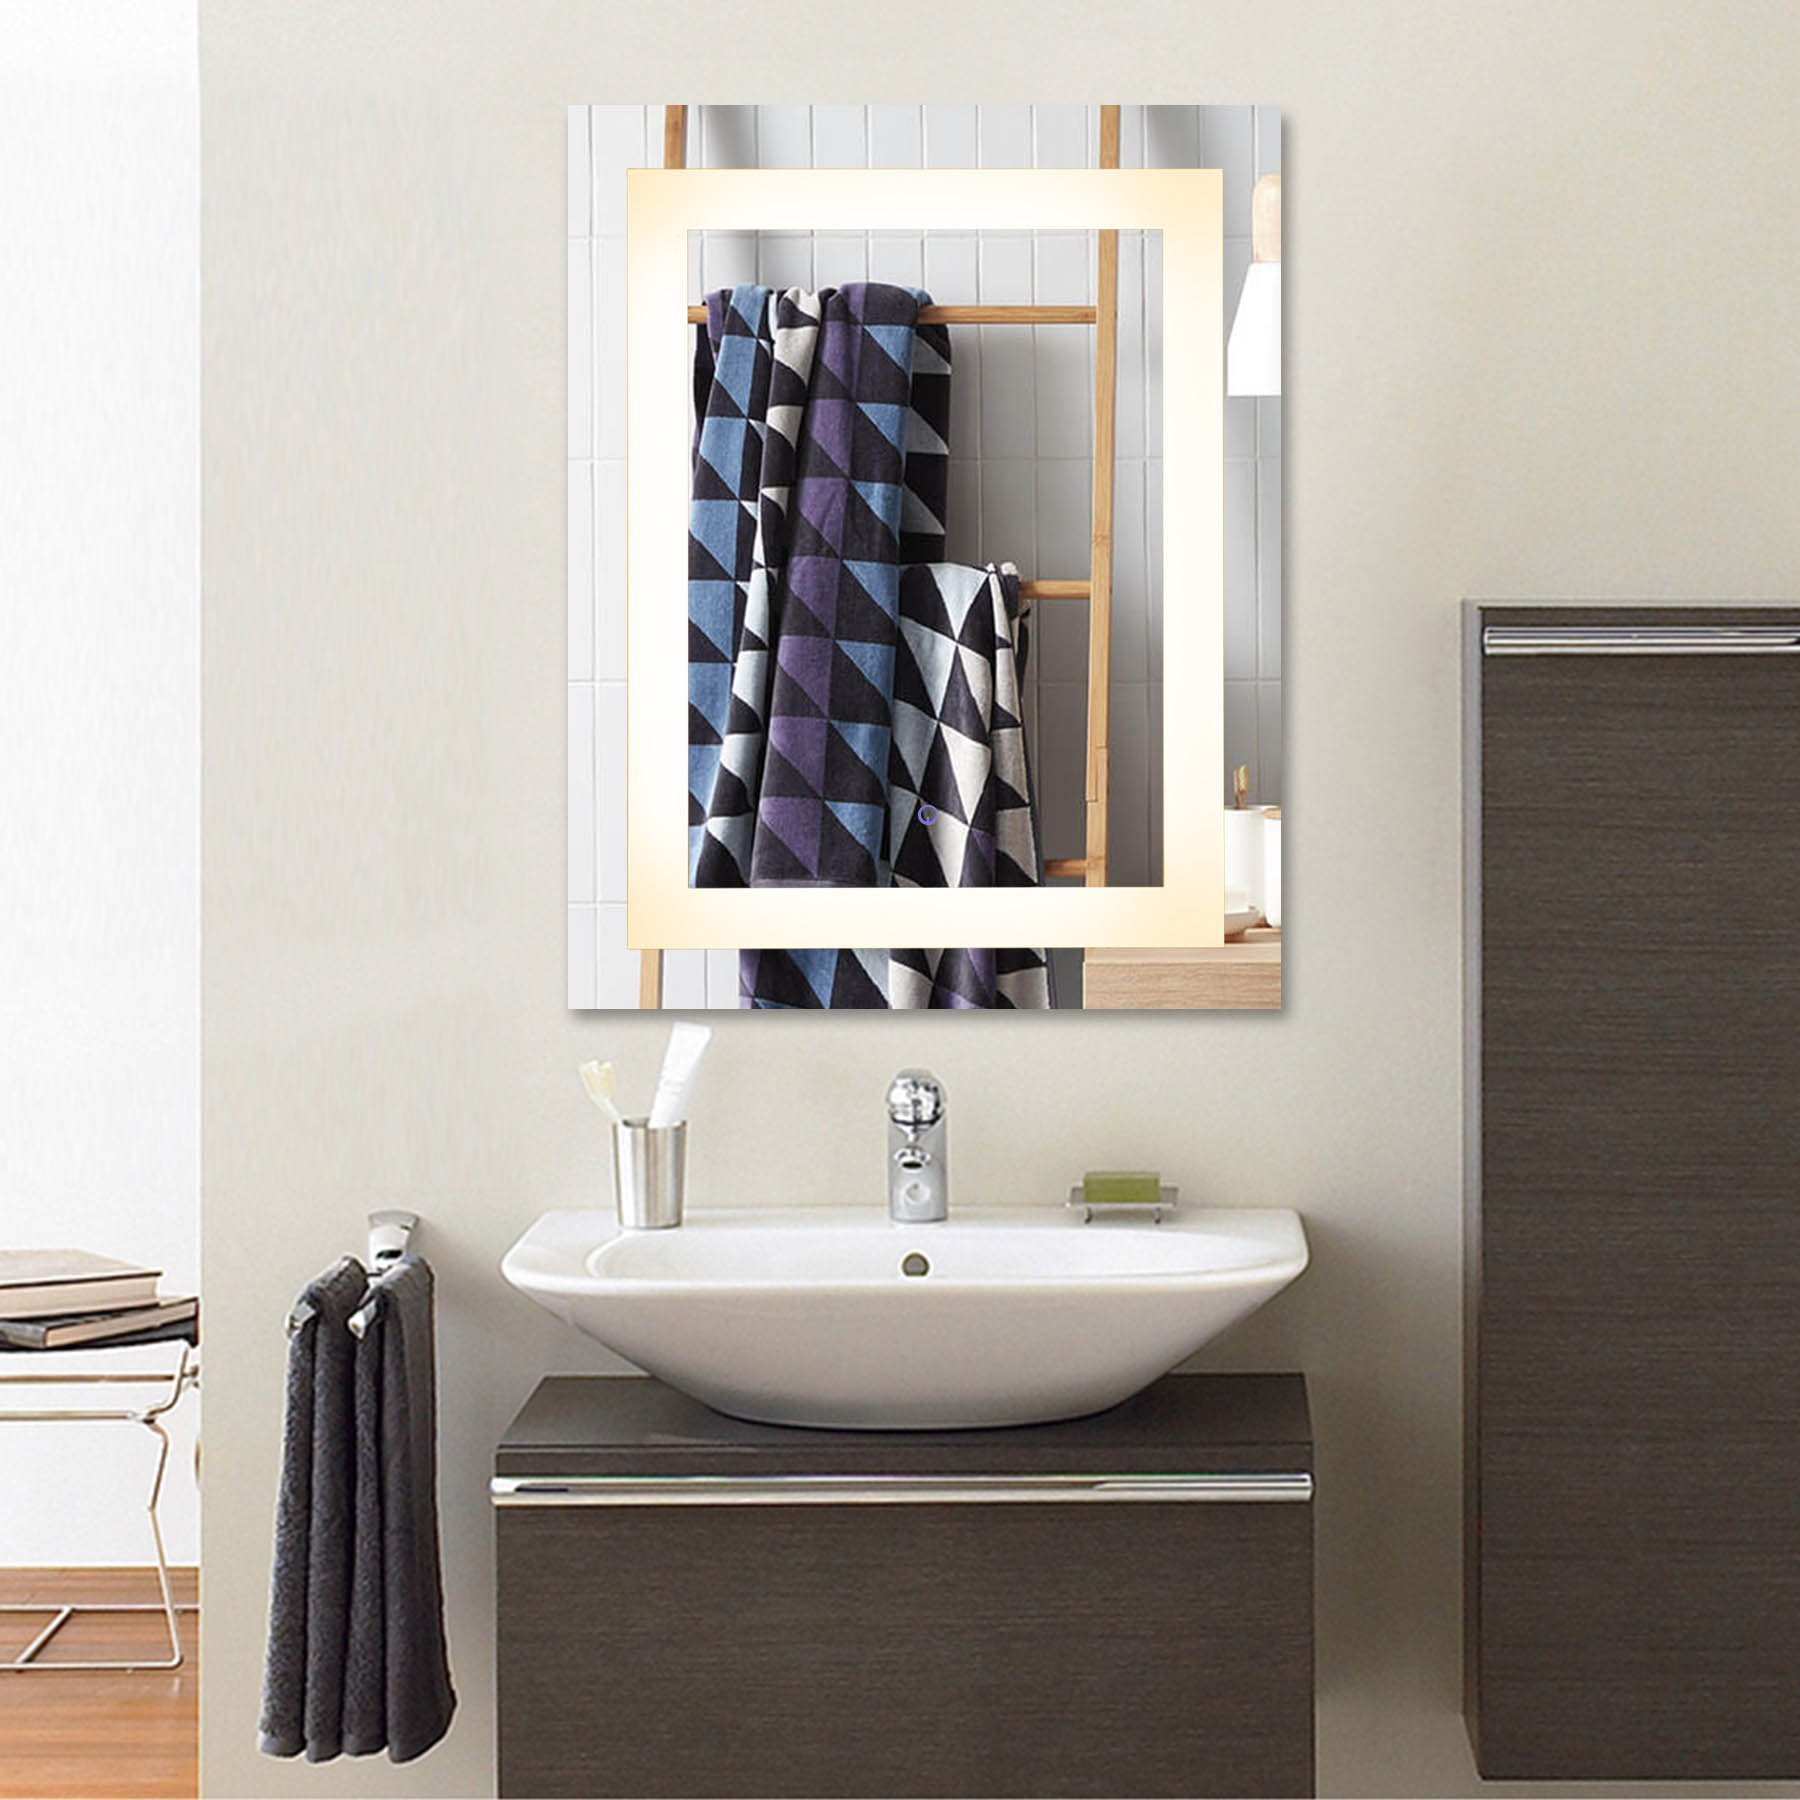 buy co-z modern led bathroom mirror, dimmable rectangle